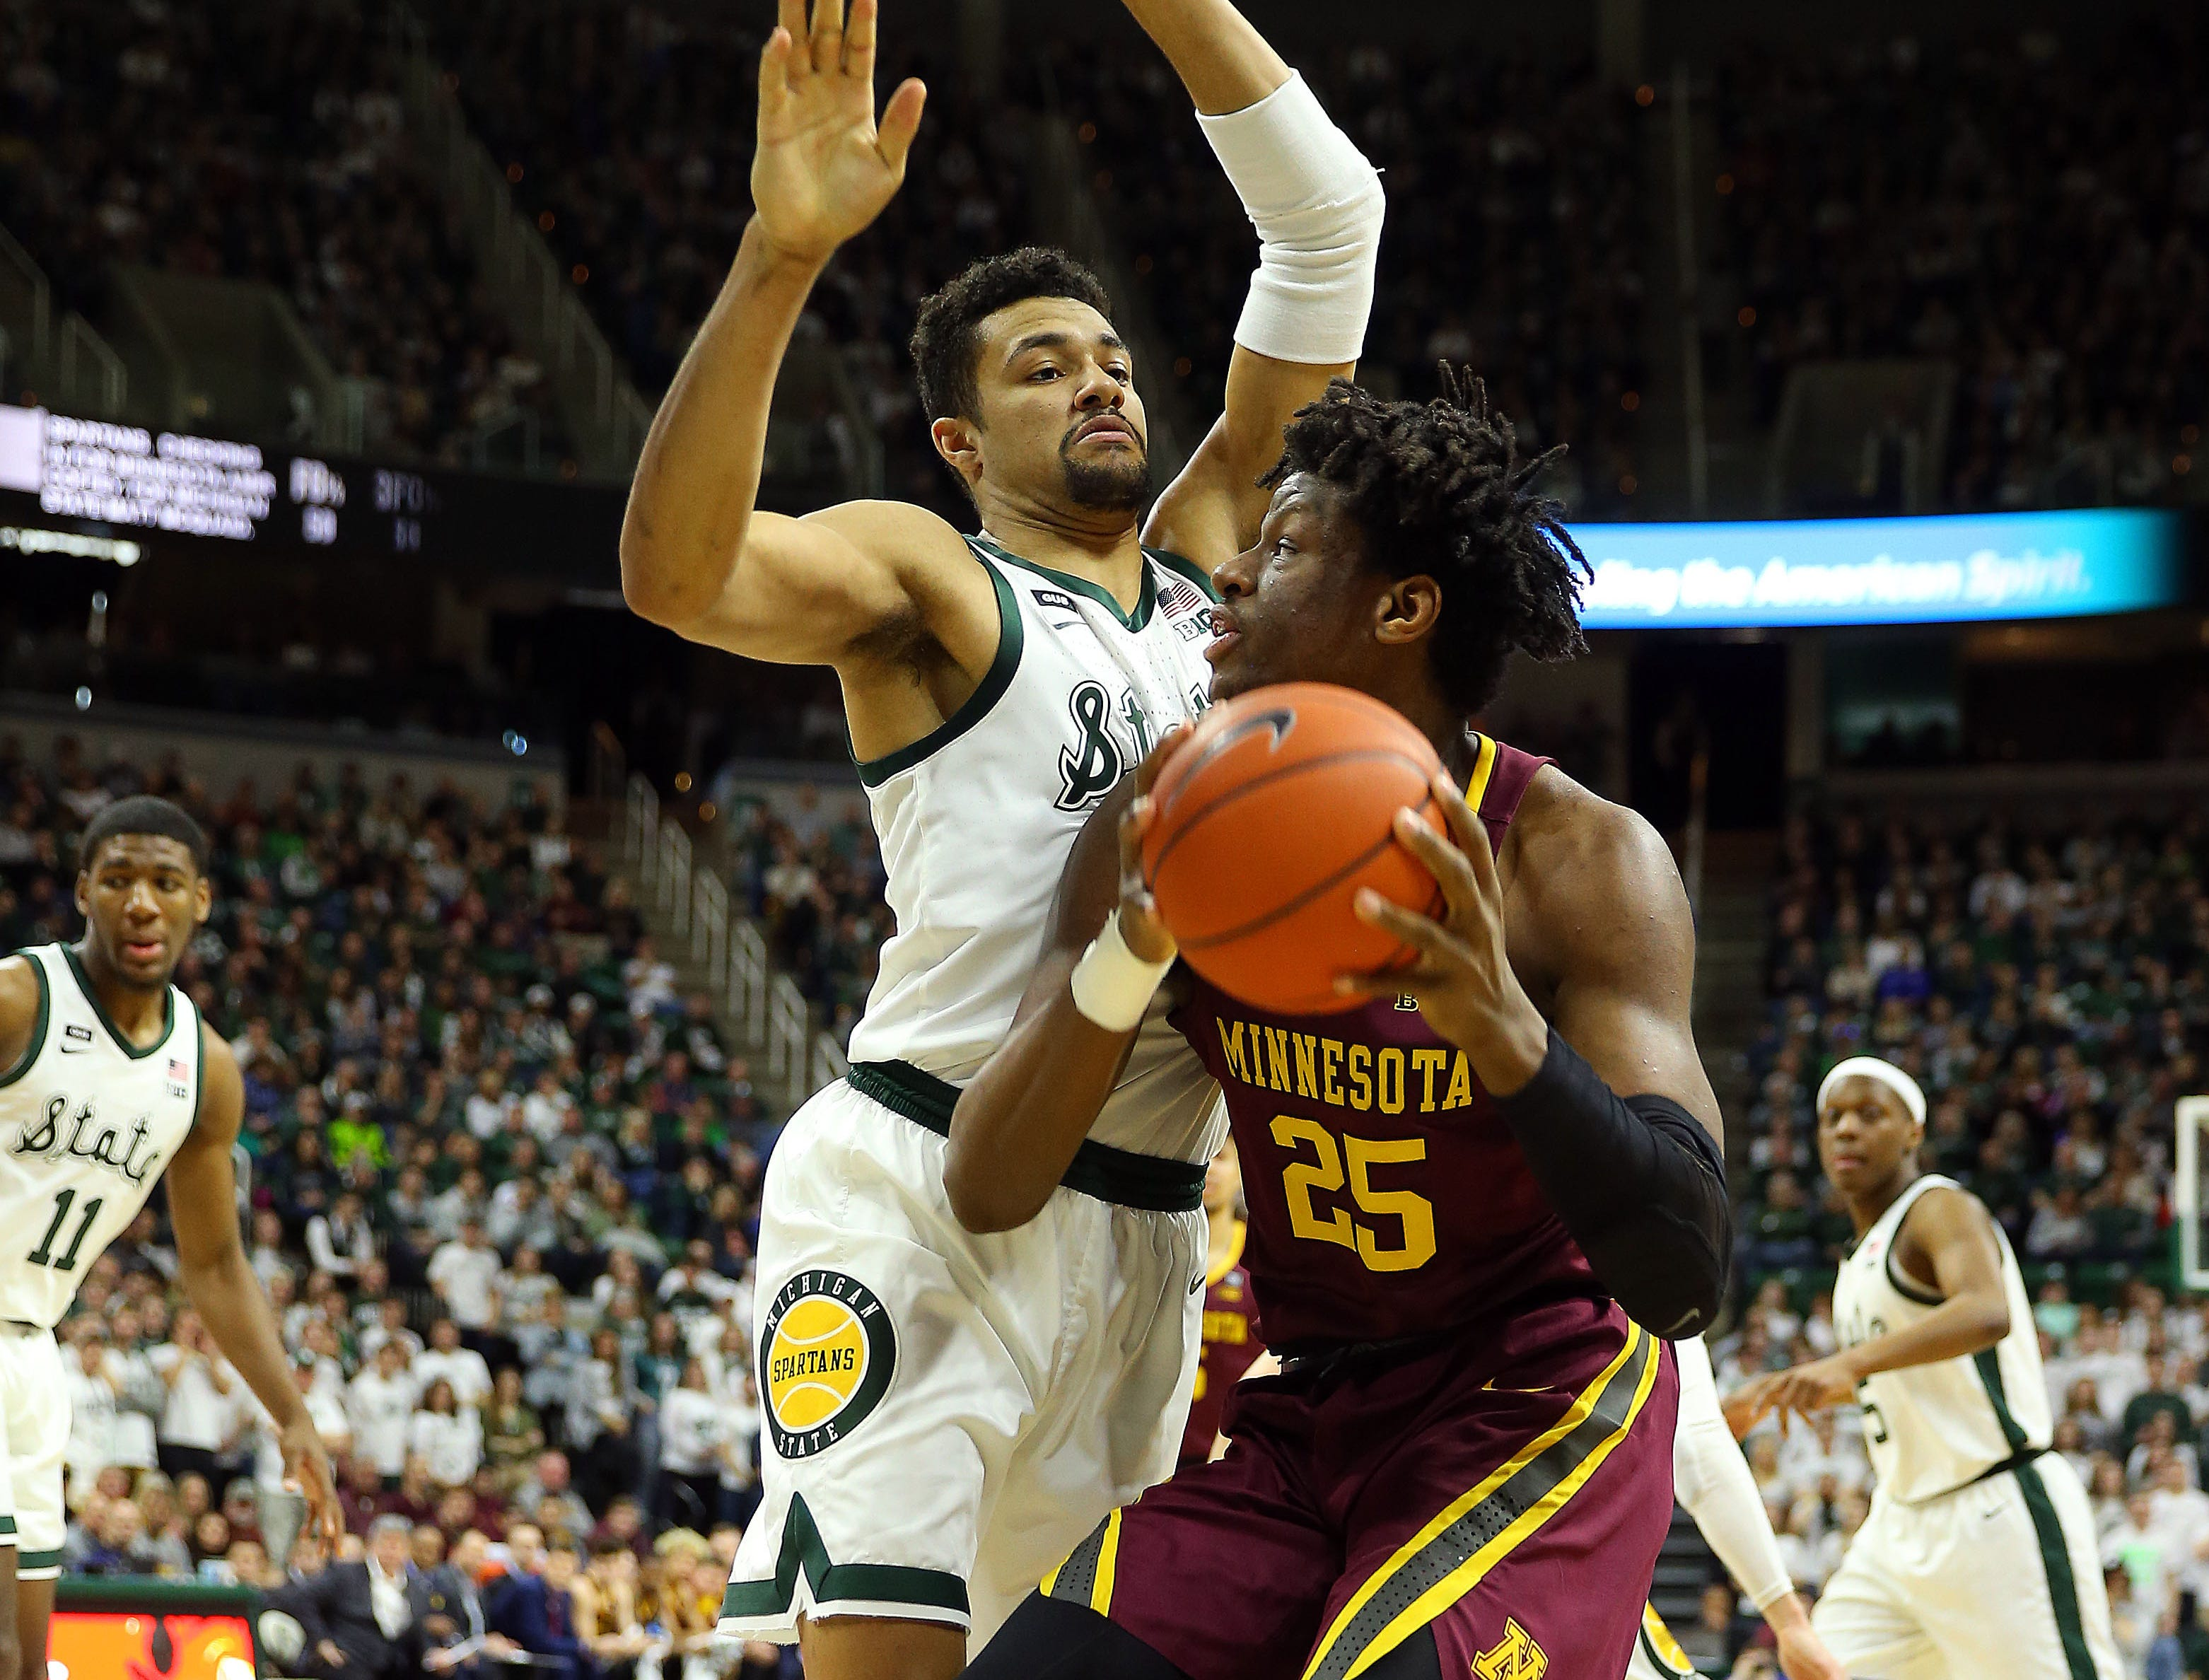 Feb 9, 2019; East Lansing, MI, USA; Minnesota Golden Gophers center Daniel Oturu (25) controls the ball against Michigan State Spartans forward Kenny Goins (25) during the first half at the Breslin Center. Mandatory Credit: Mike Carter-USA TODAY Sports